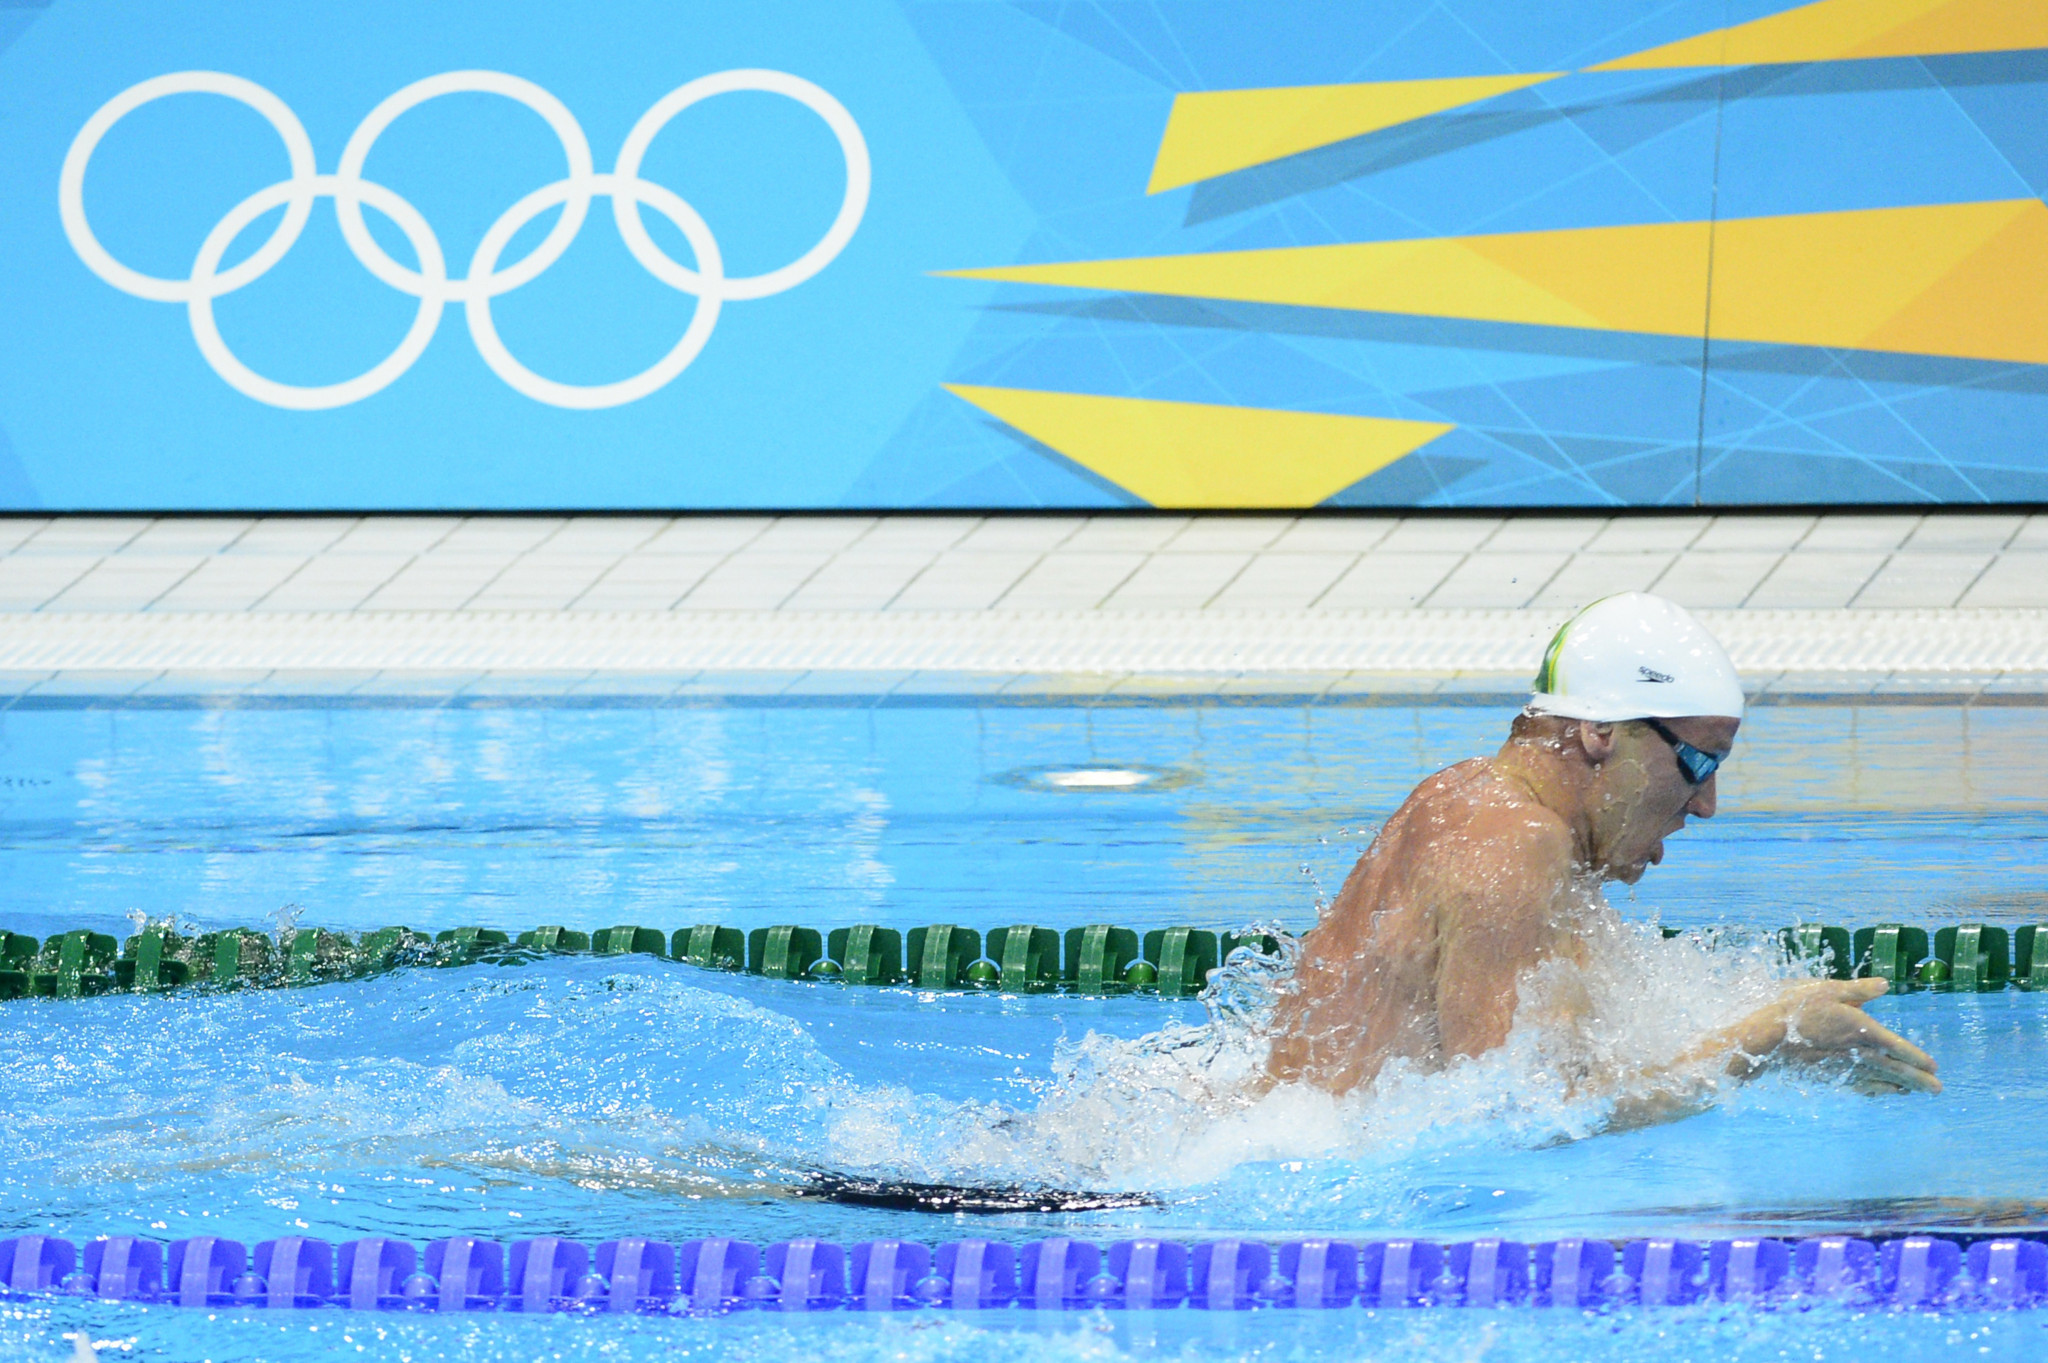 Australian Olympic swimming medal at risk after Rickard reveals positive London 2012 retest